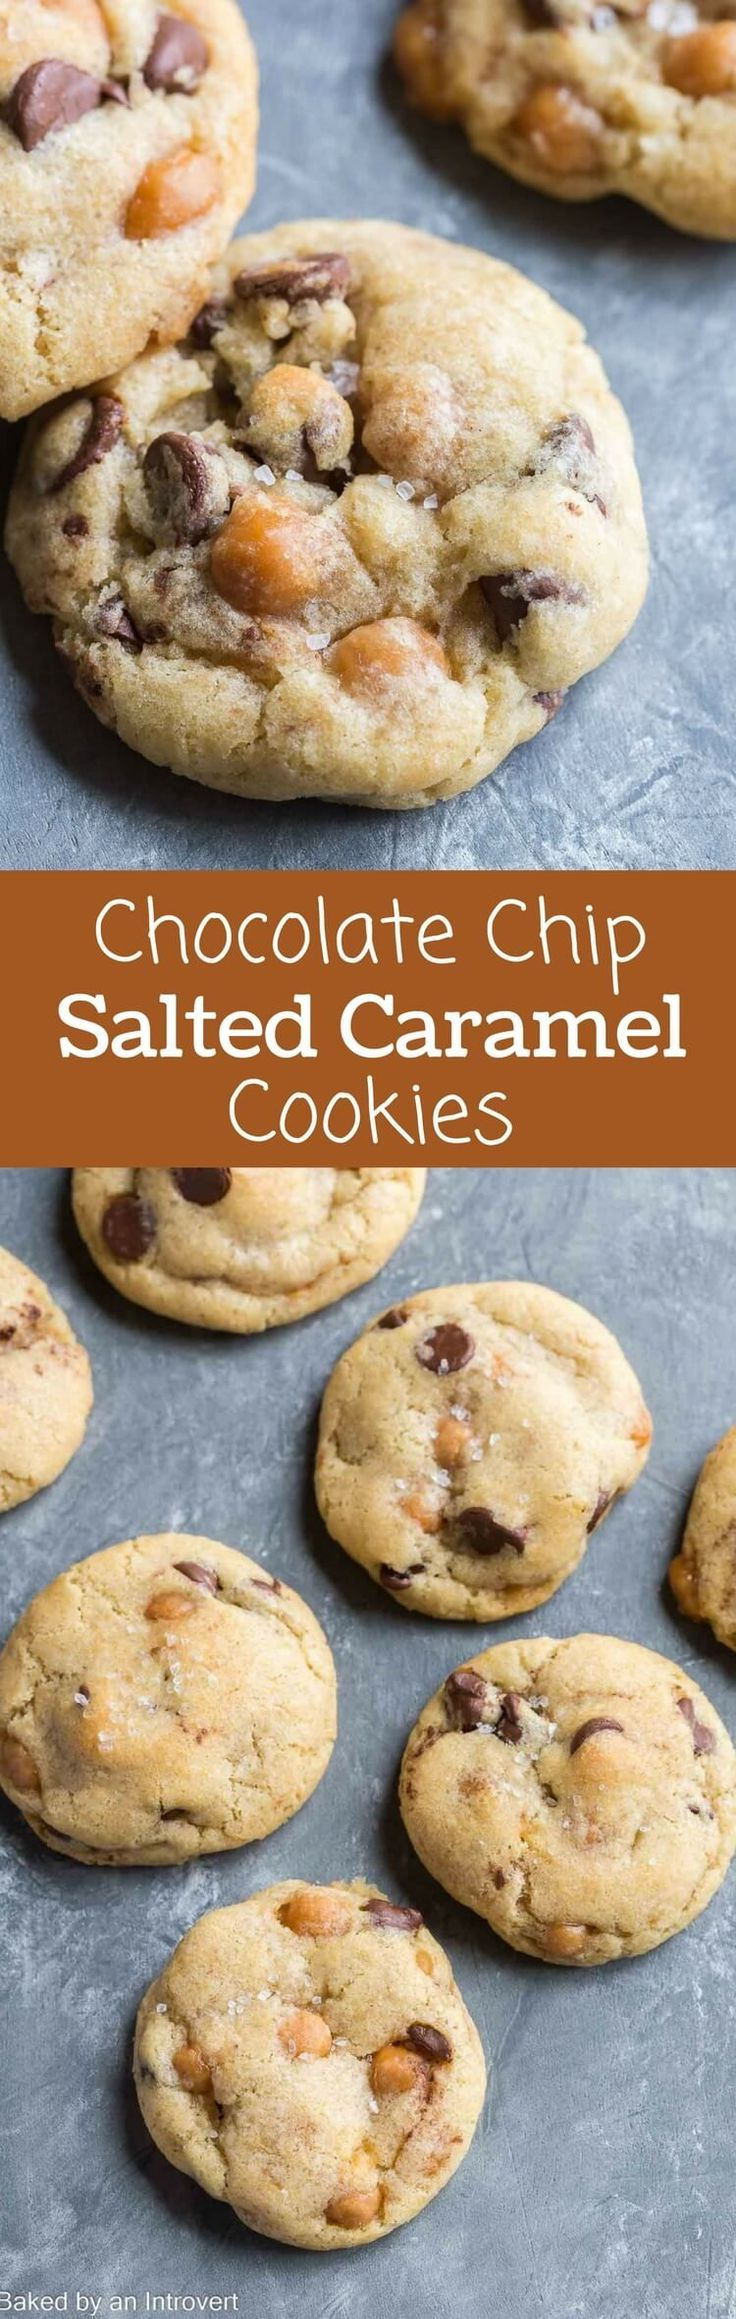 Soft and chewy Chocolate Chip Salted Caramel Cookies combine everyone's favorite flavors!  via @introvertbaker